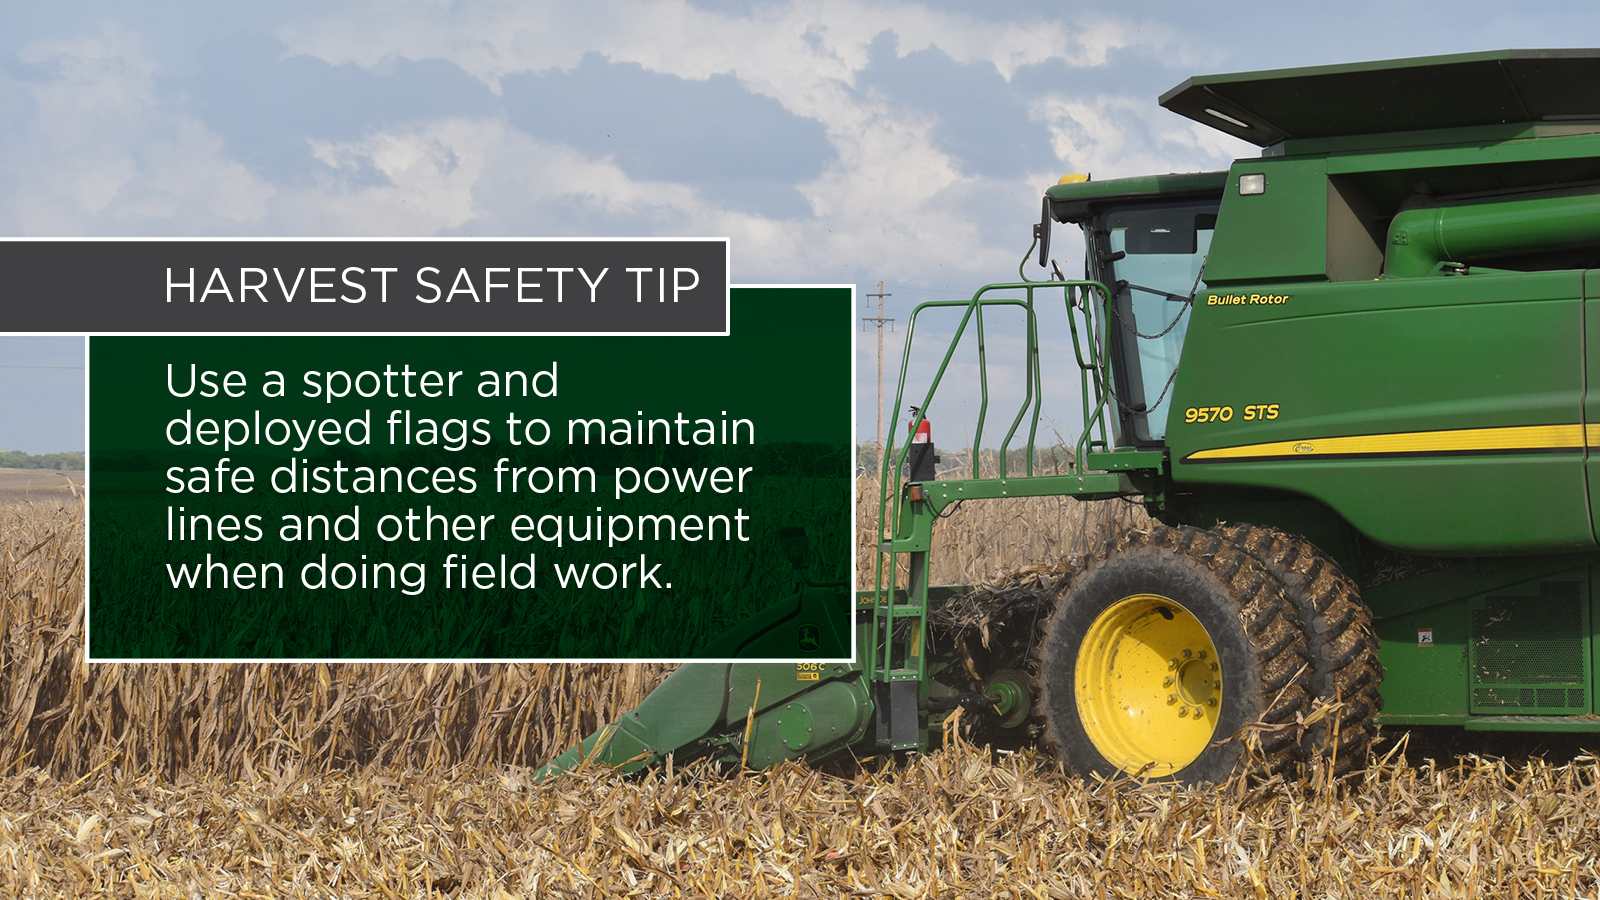 Remain a safe distance from power lines when doing field work